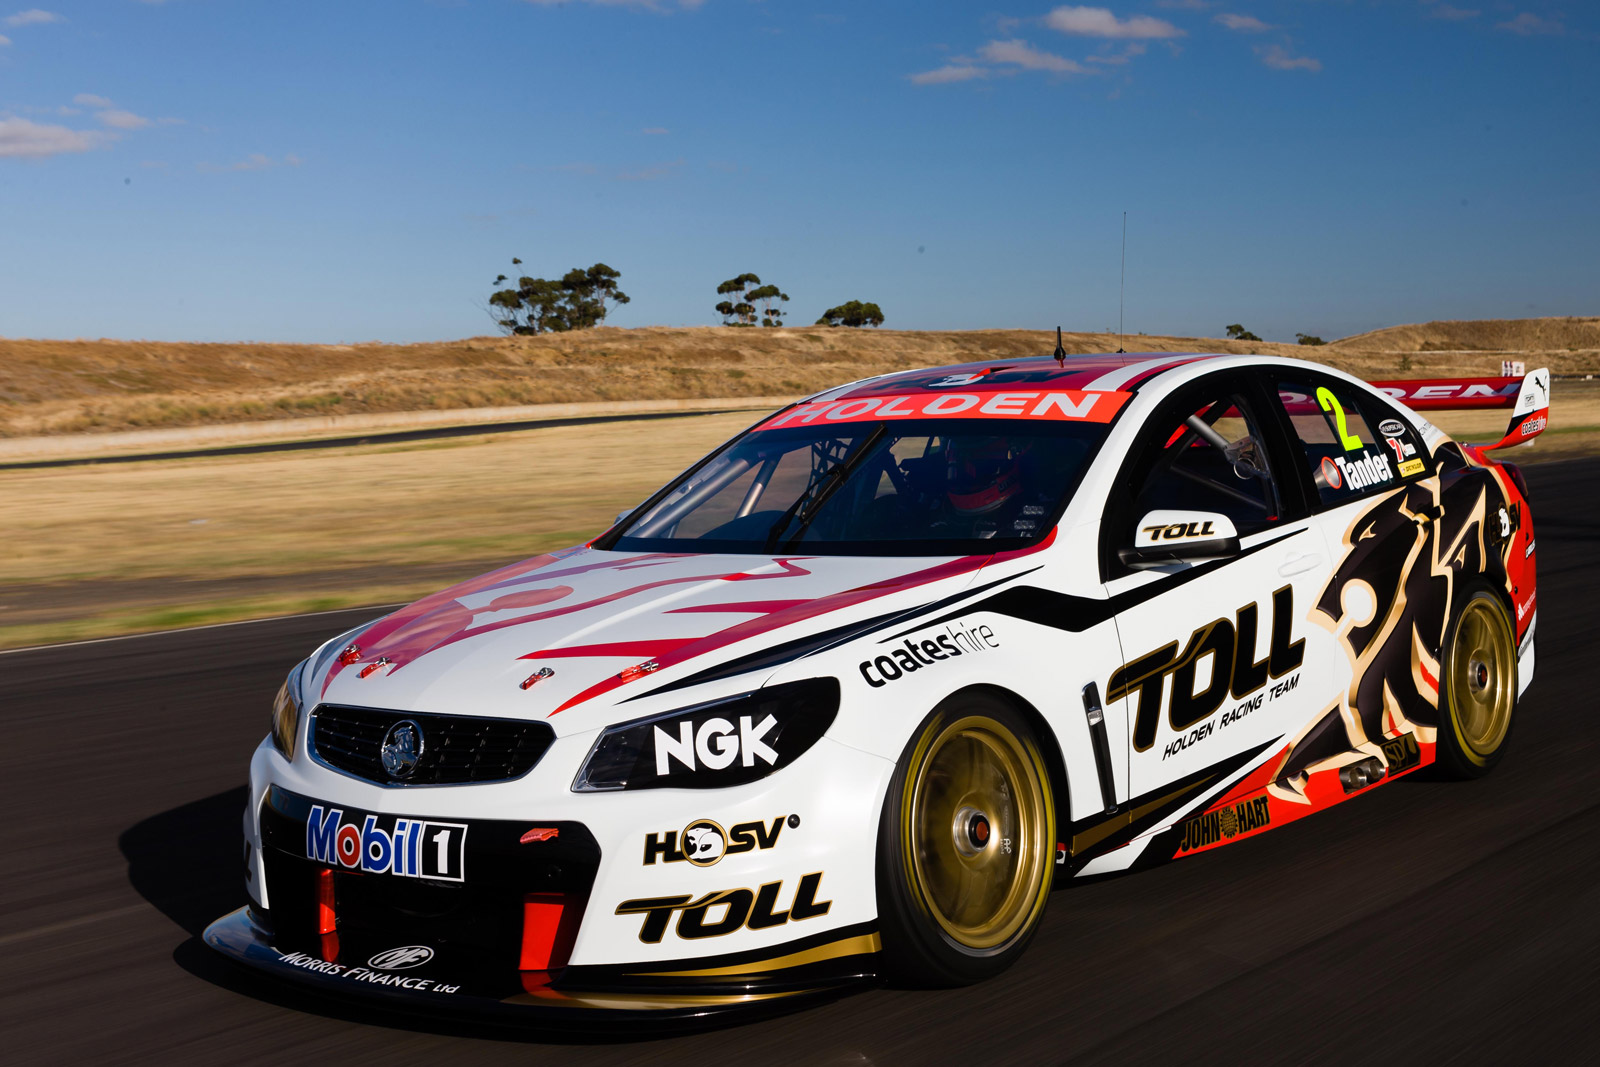 VF Holden Commodore V8 Supercars race car revealed